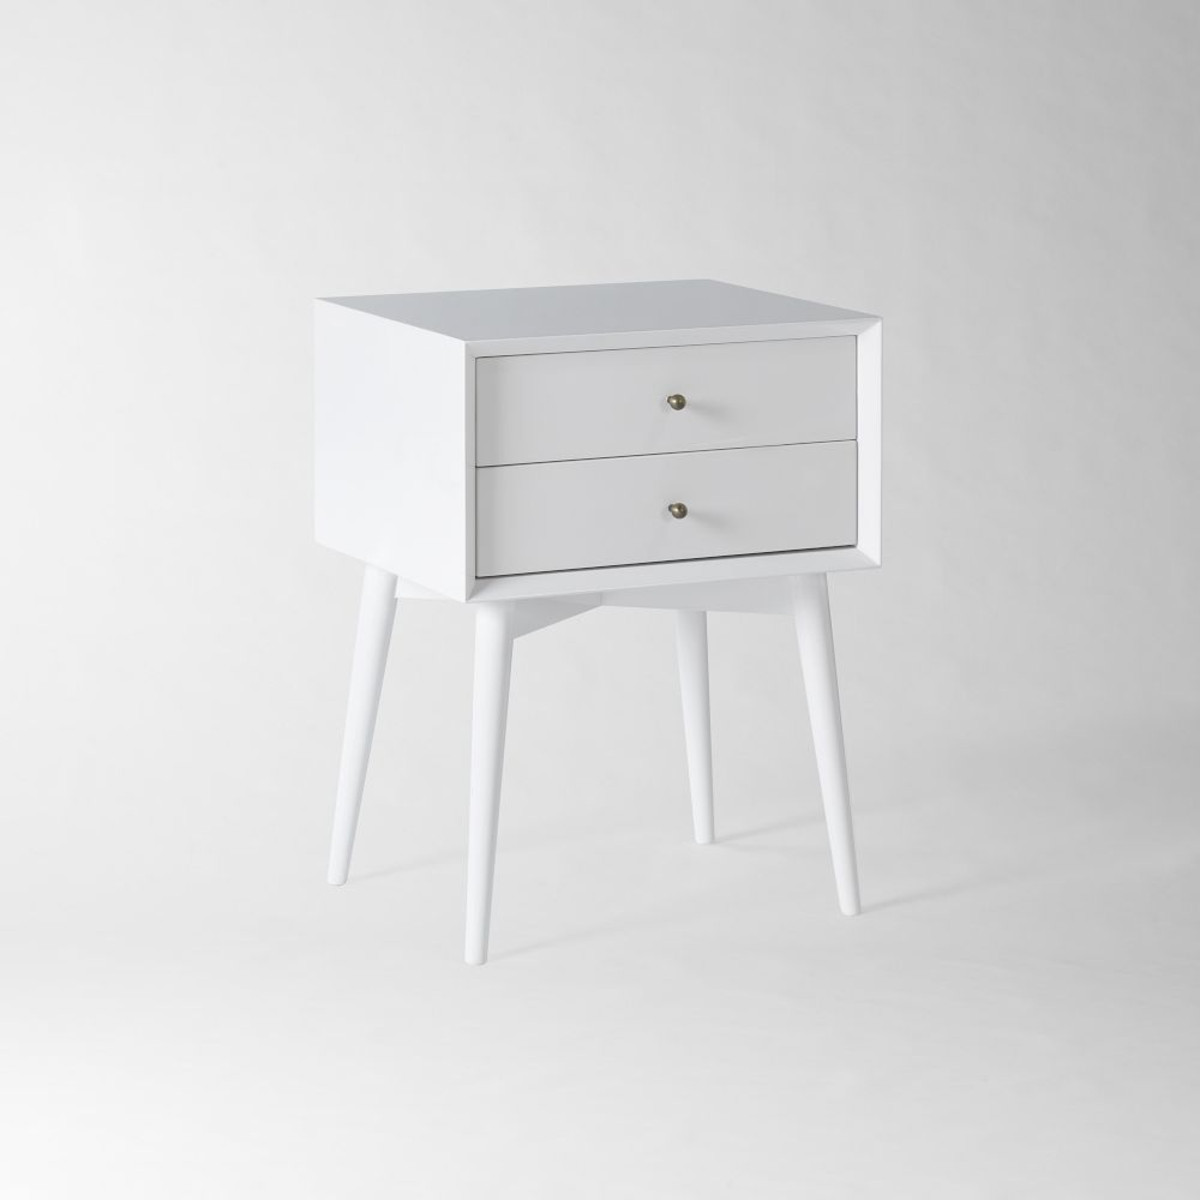 Why pick a small white bedside table for your living space